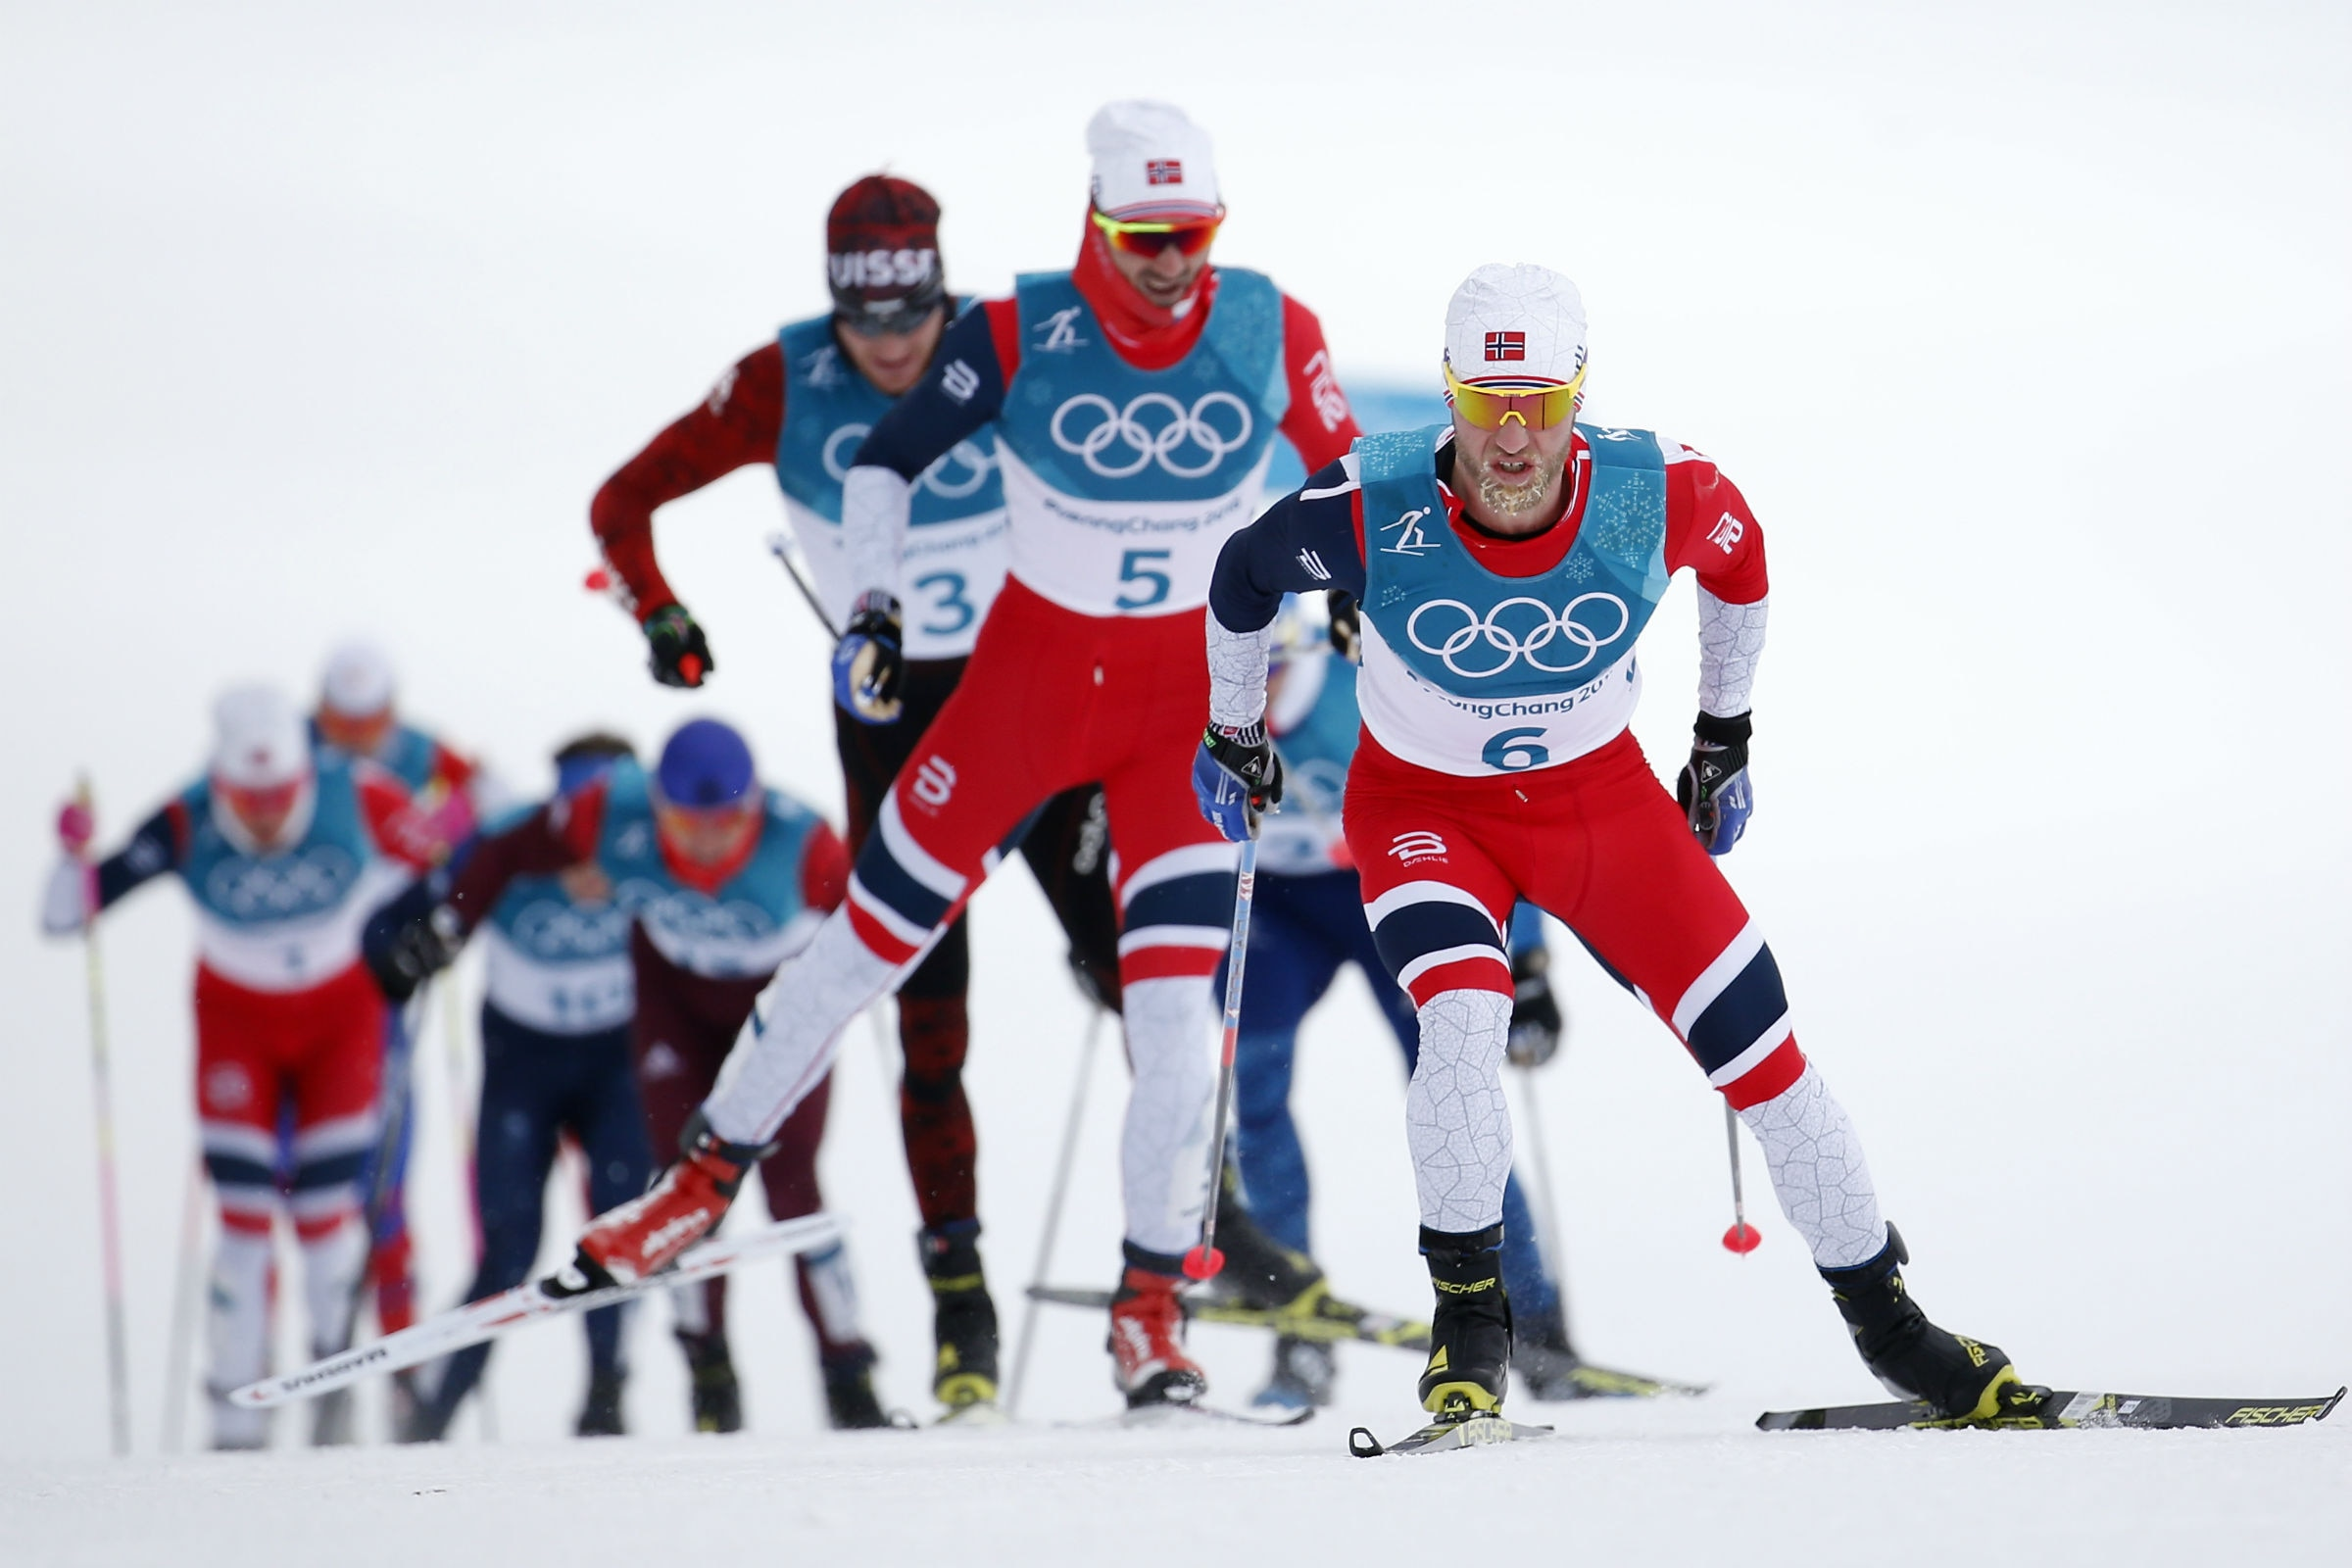 Cross-country Skiing - Men's 15km + 15km Skiathlon